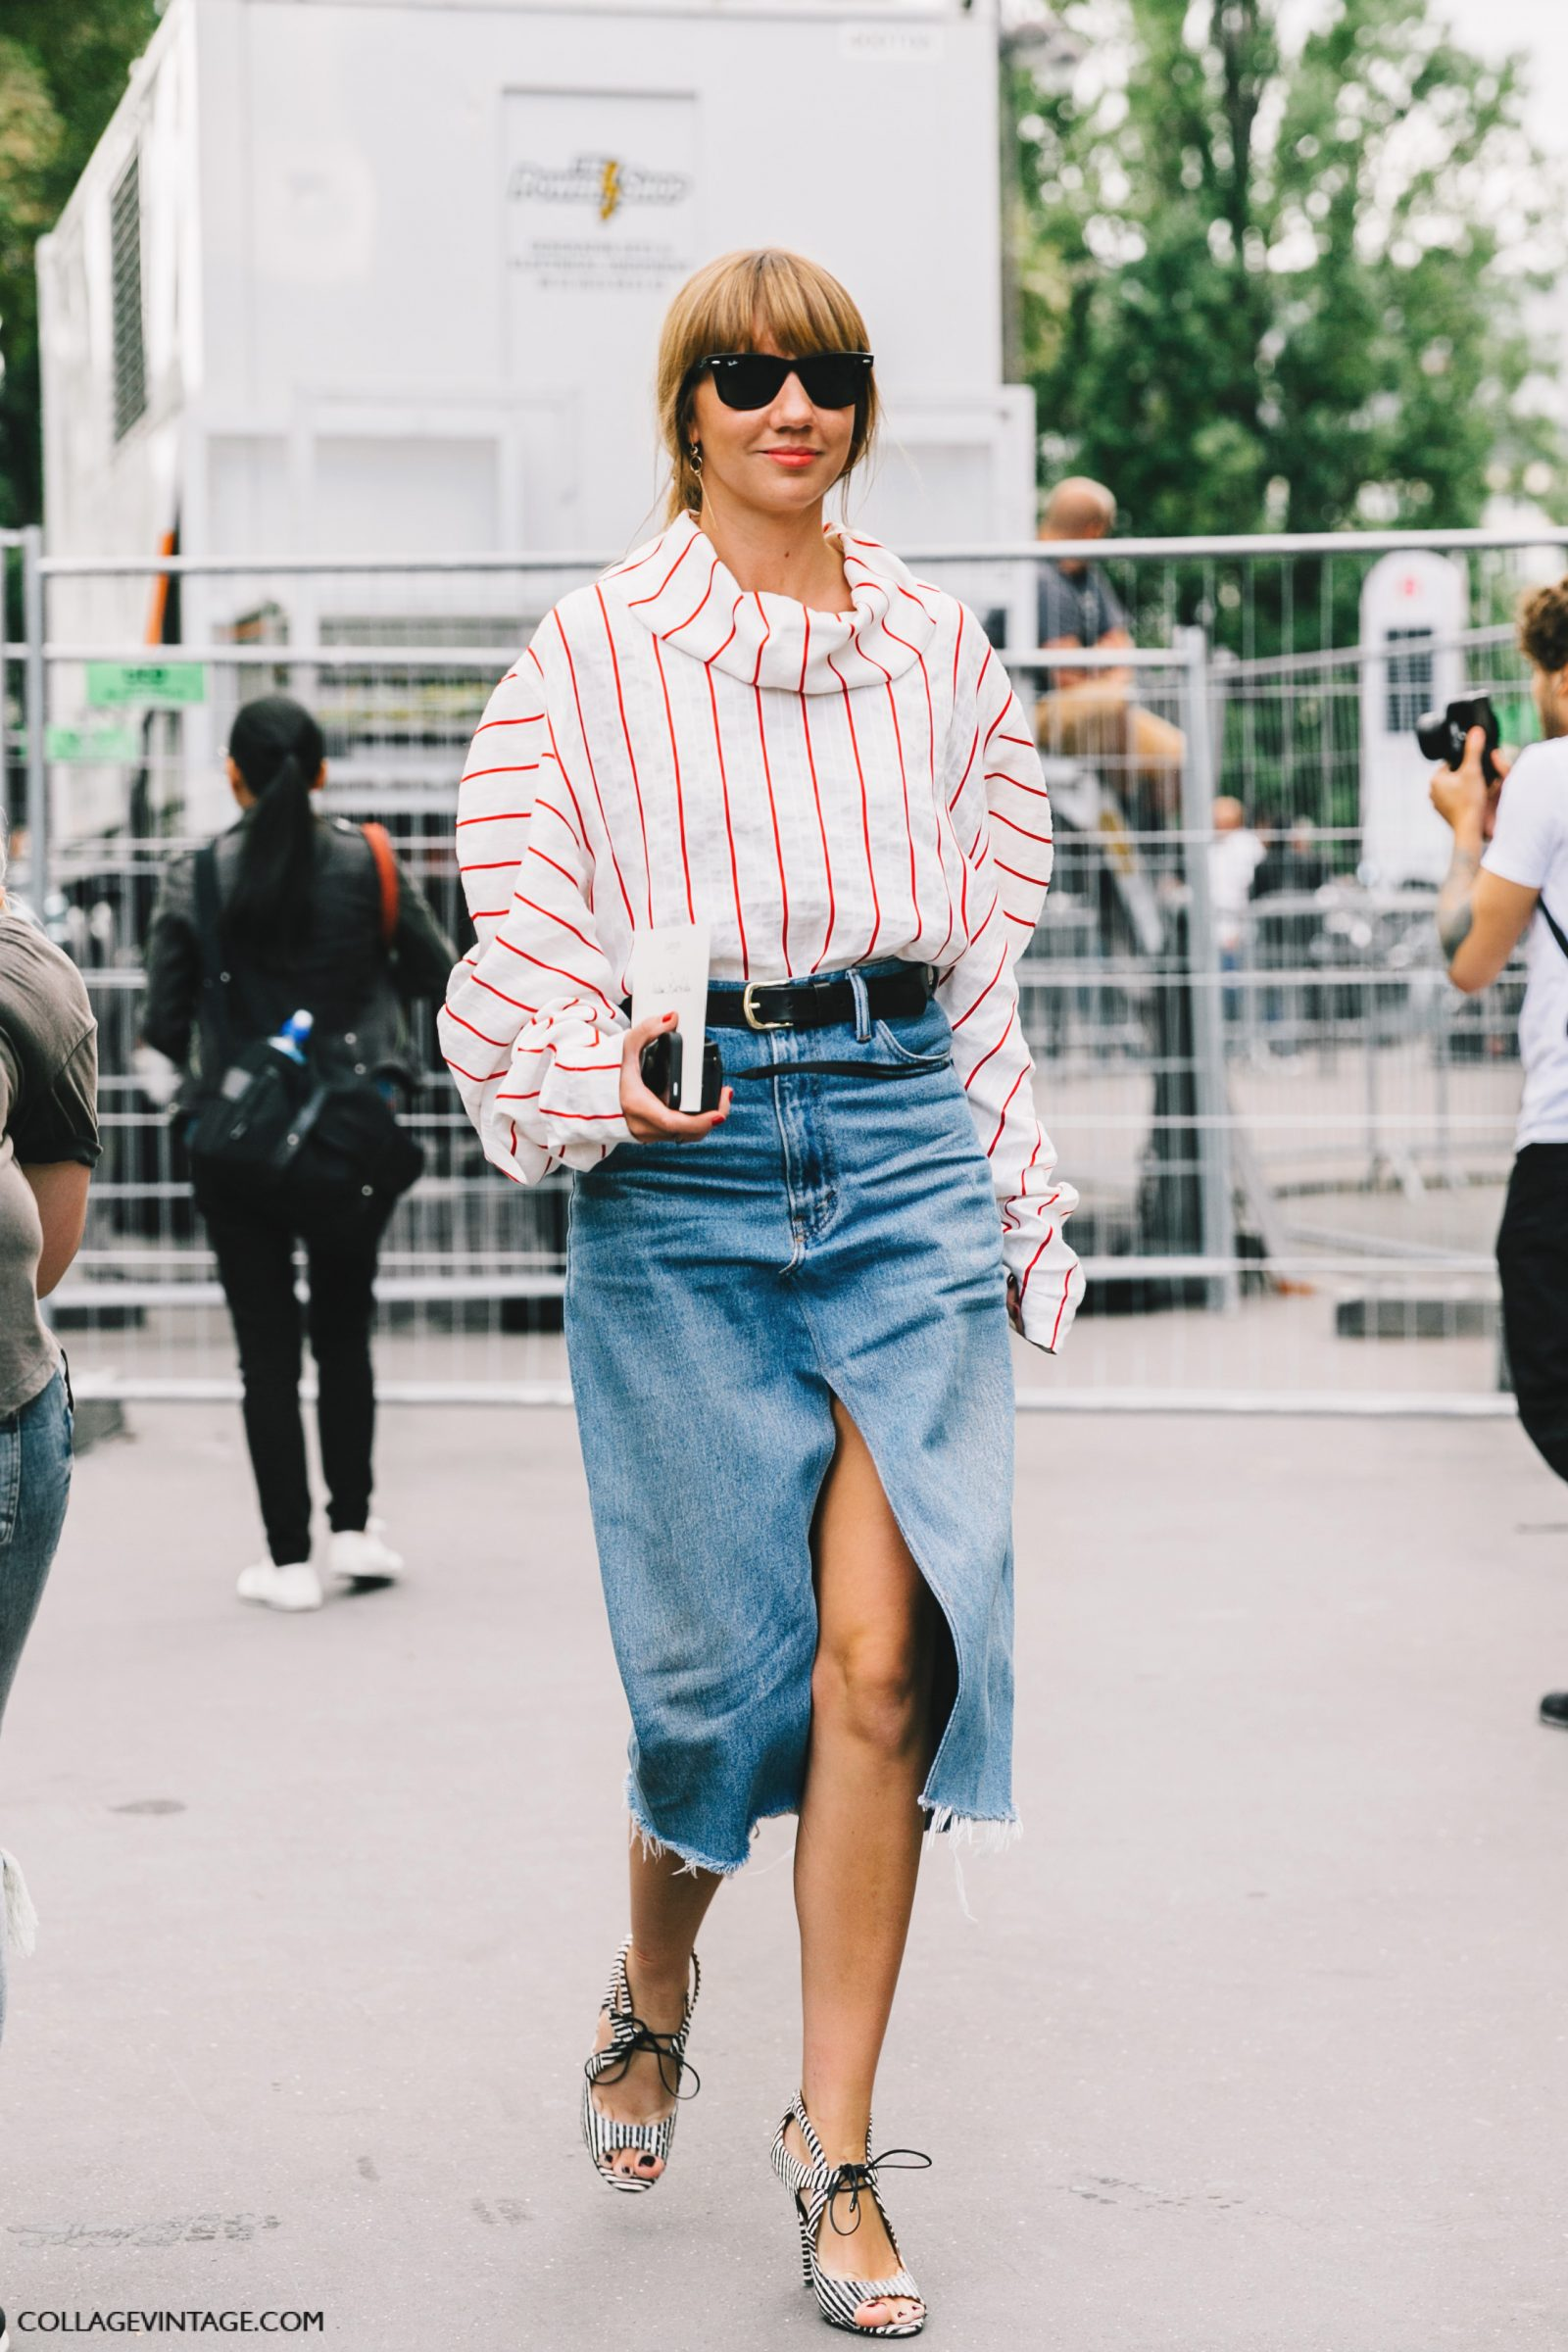 pfw-paris_fashion_week_ss17-street_style-outfits-collage_vintage-rochas-courreges-dries_van_noten-lanvin-guy_laroche-92